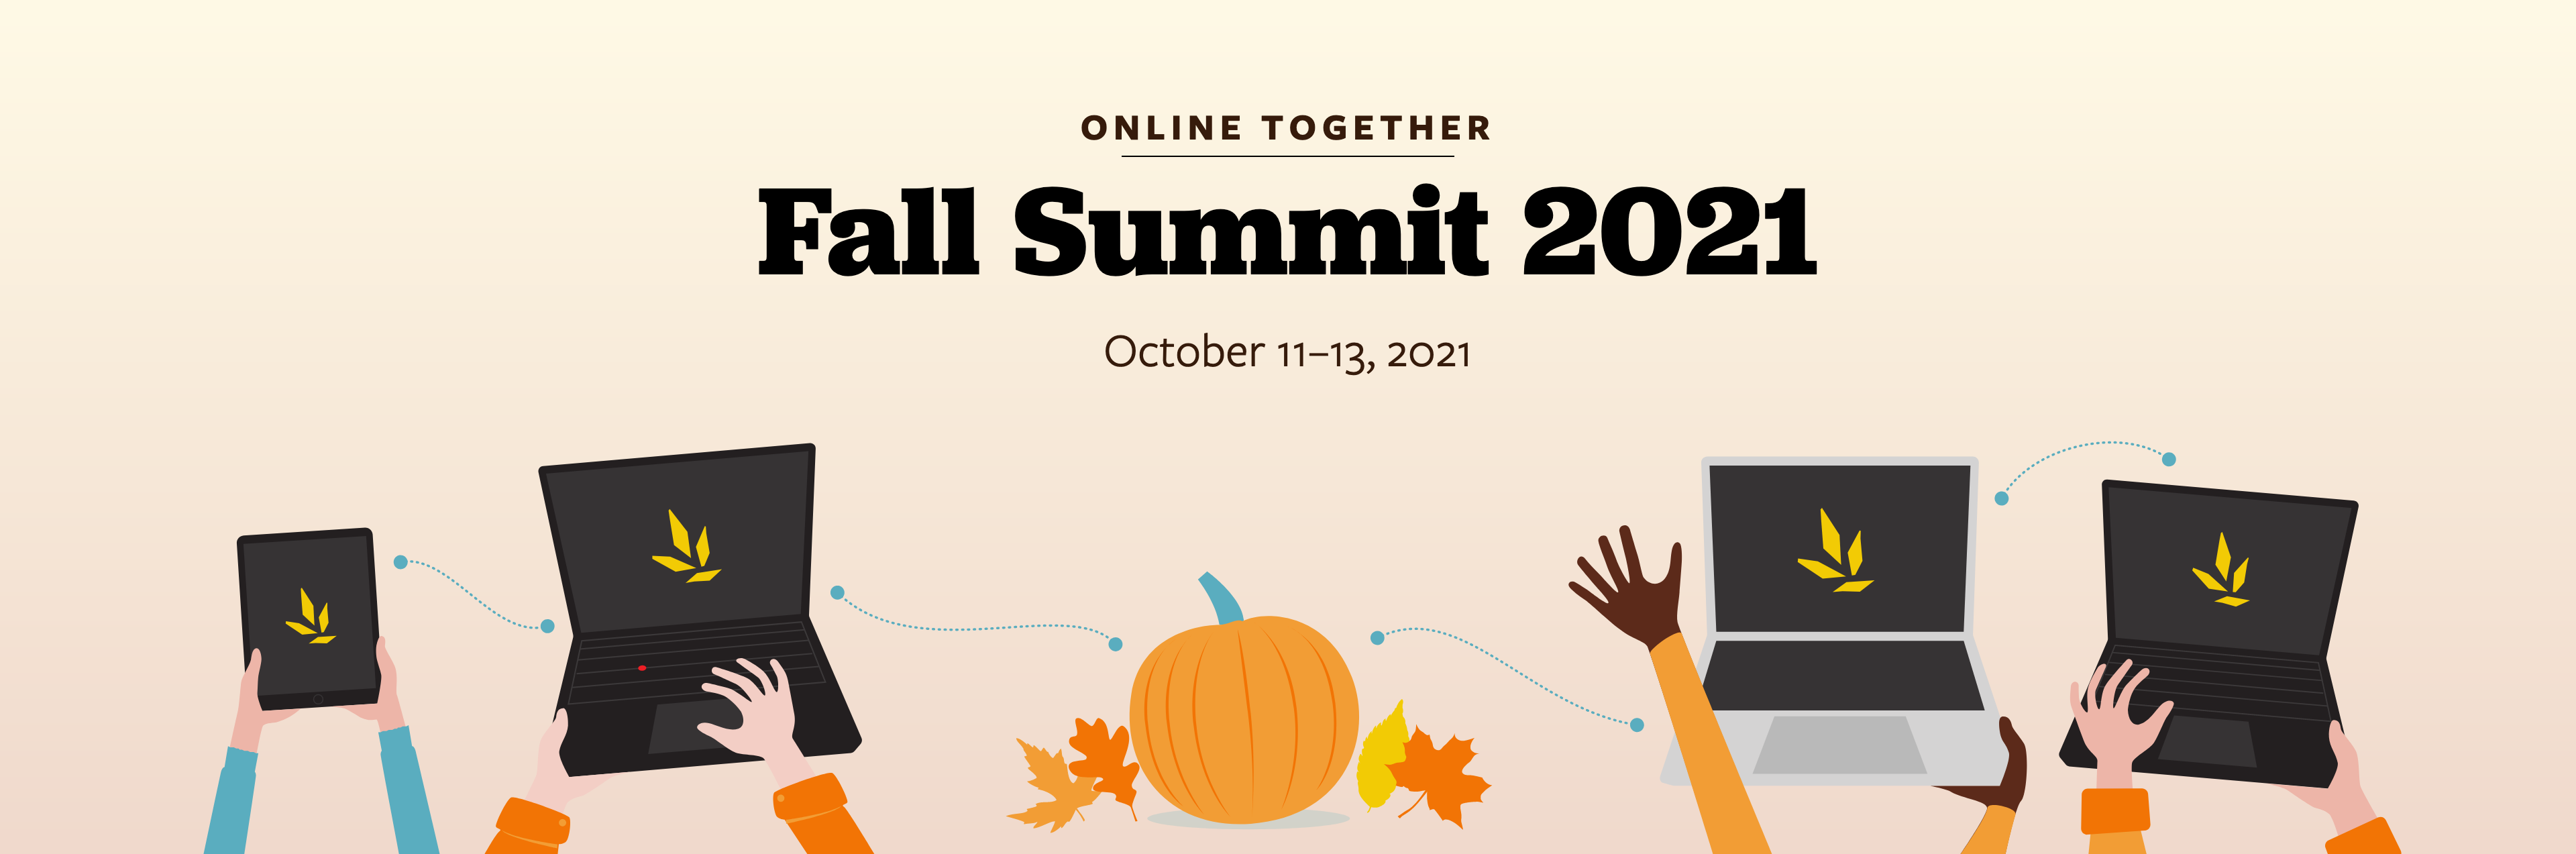 Online Together Fall Summit 2021, October 11-13